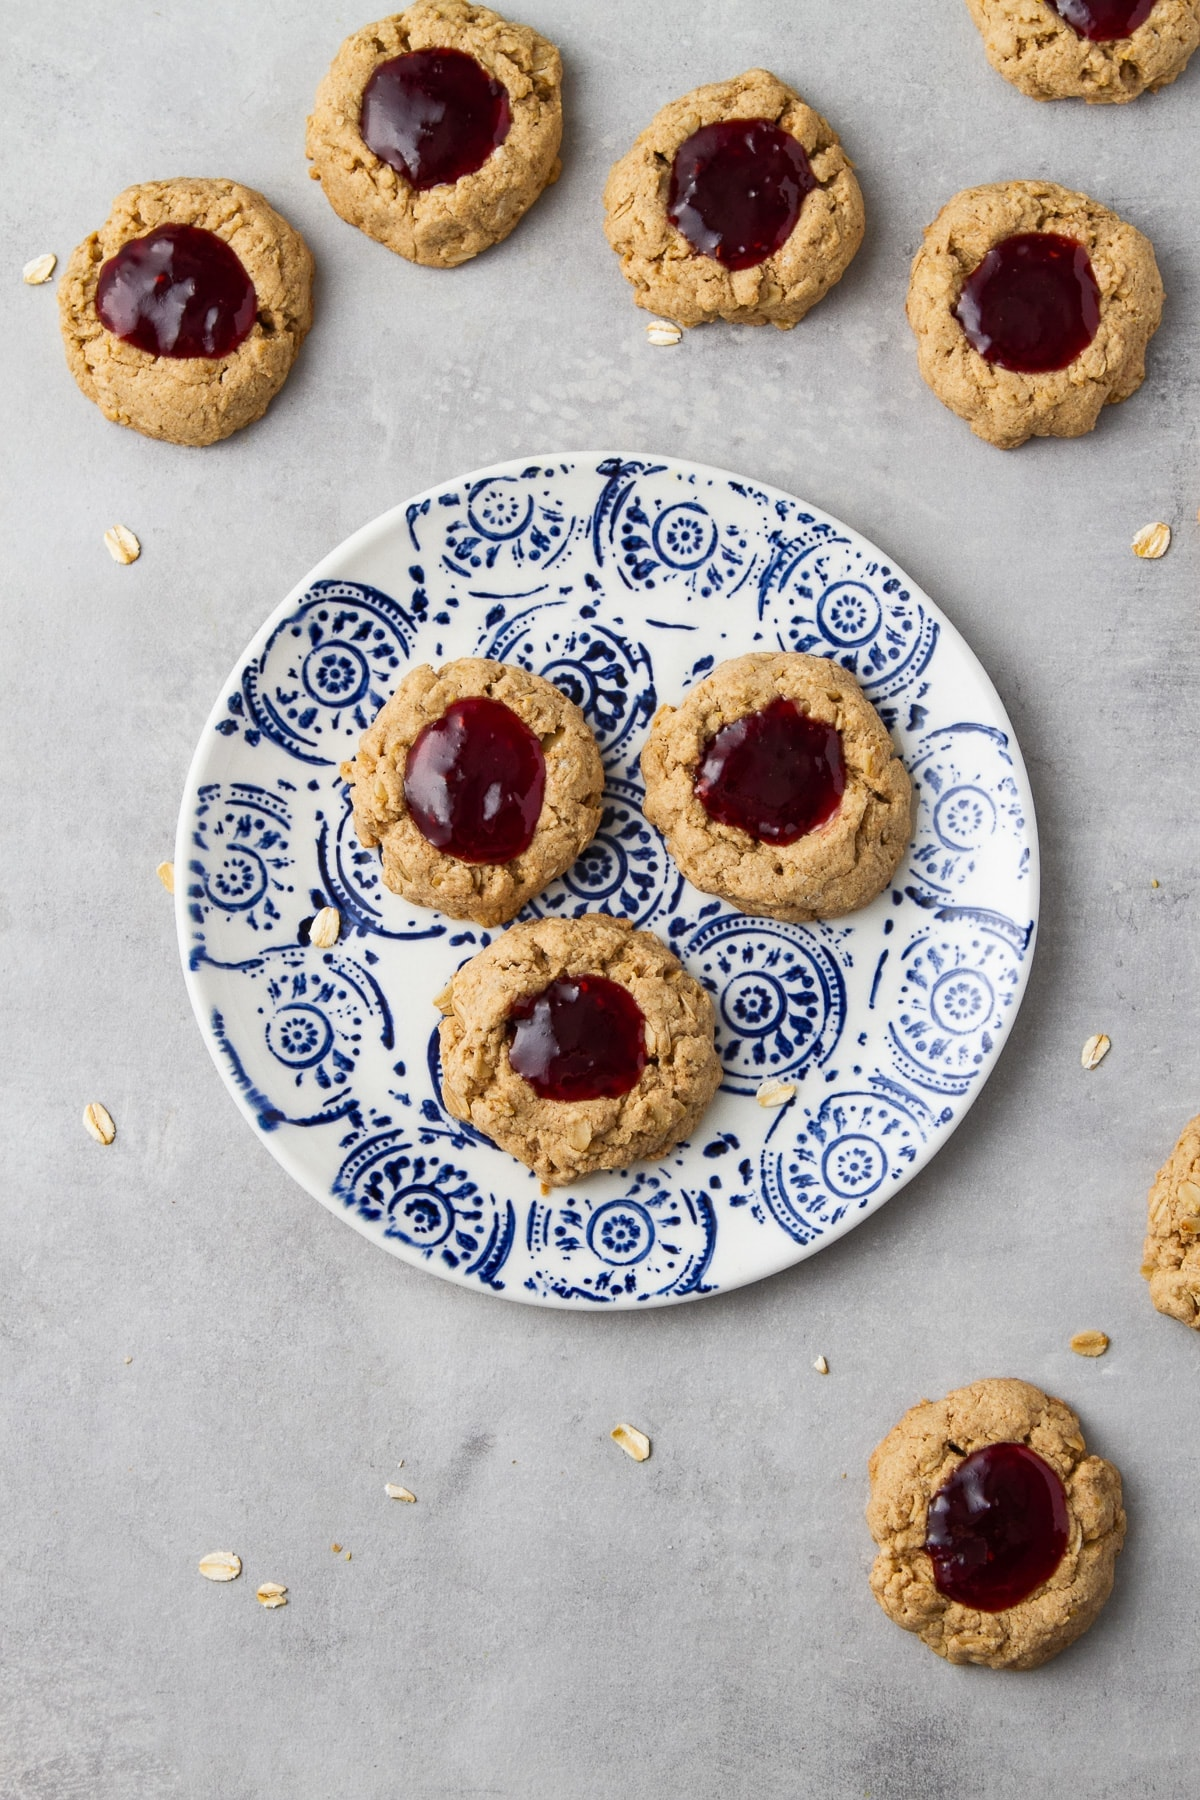 top down view of freshly made vegan oat jam thumbprint cookies on a small plate.